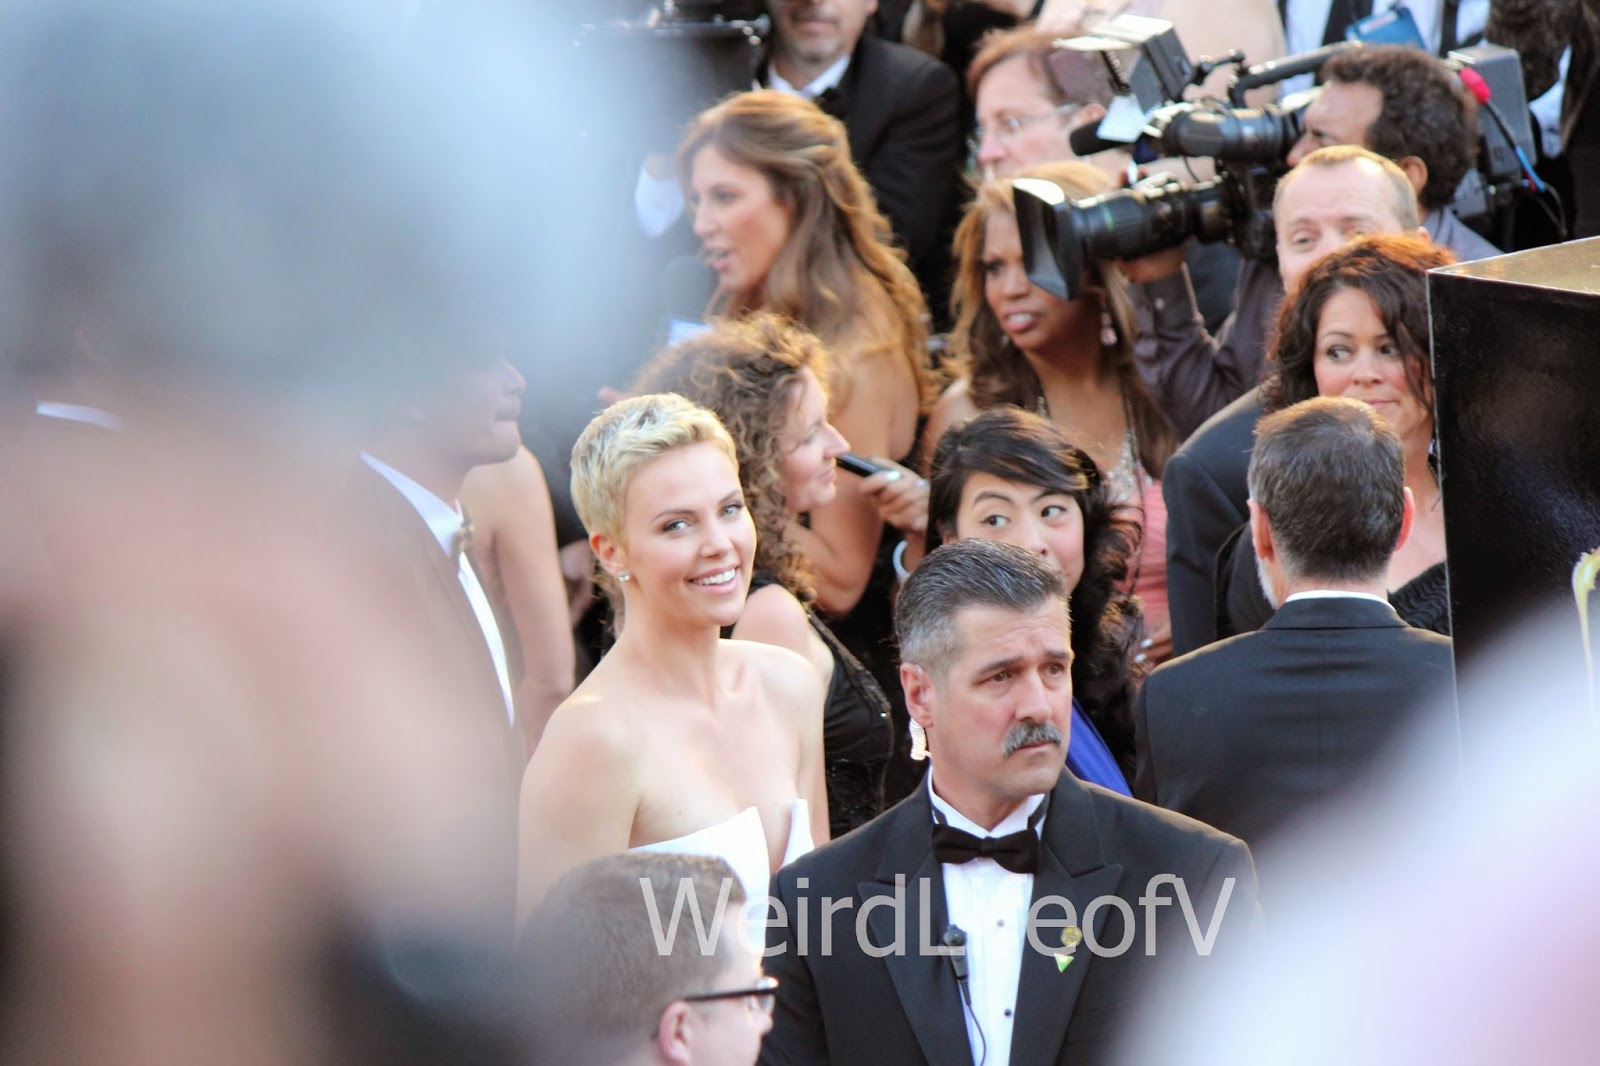 Charlize Theron smiling at the fans at the 2013 Academy Awards